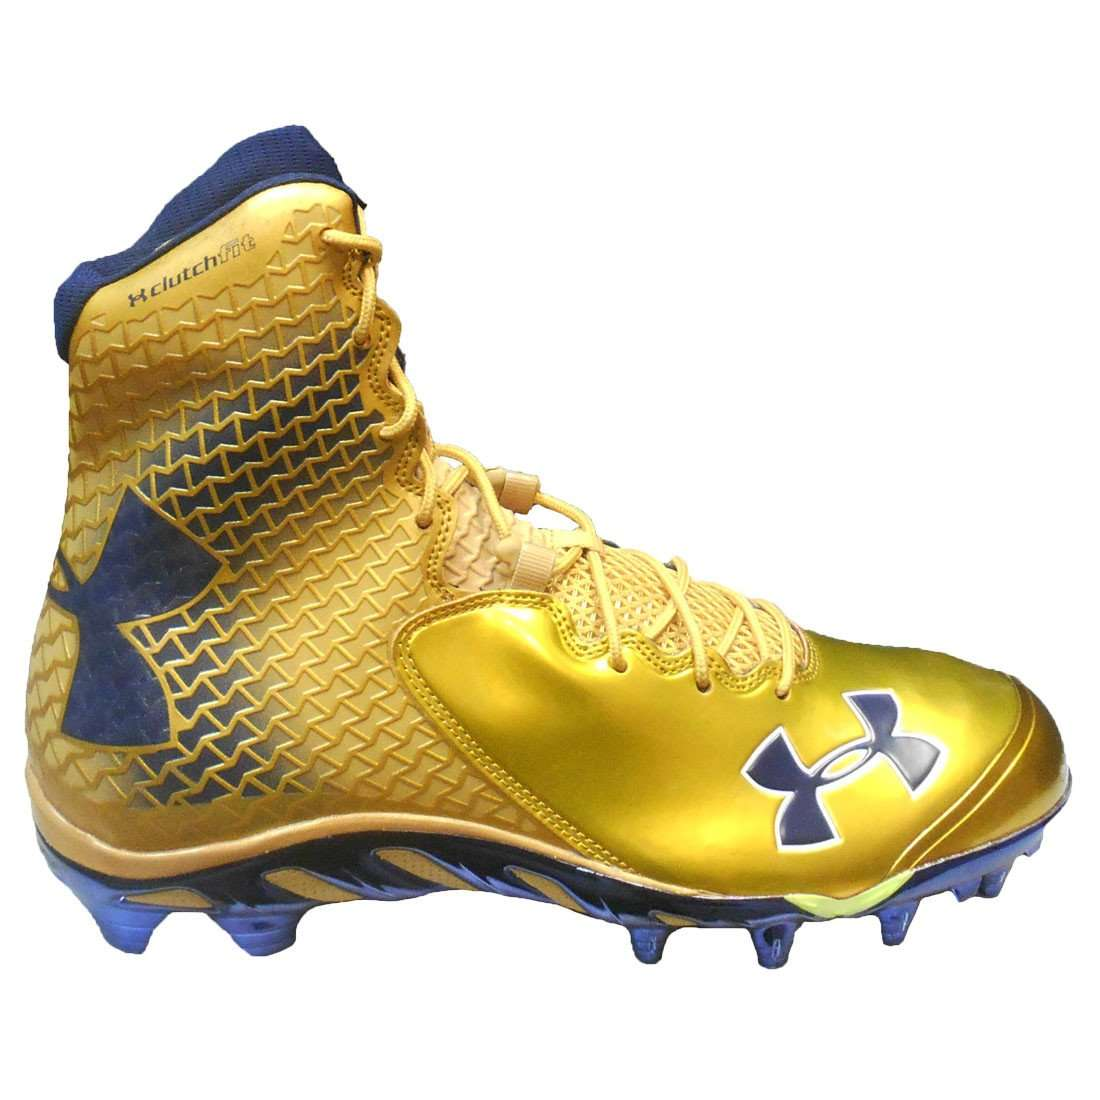 77d297b58 Under Armour Team Spine Brawler Molded Football Cleats - League Outfitters